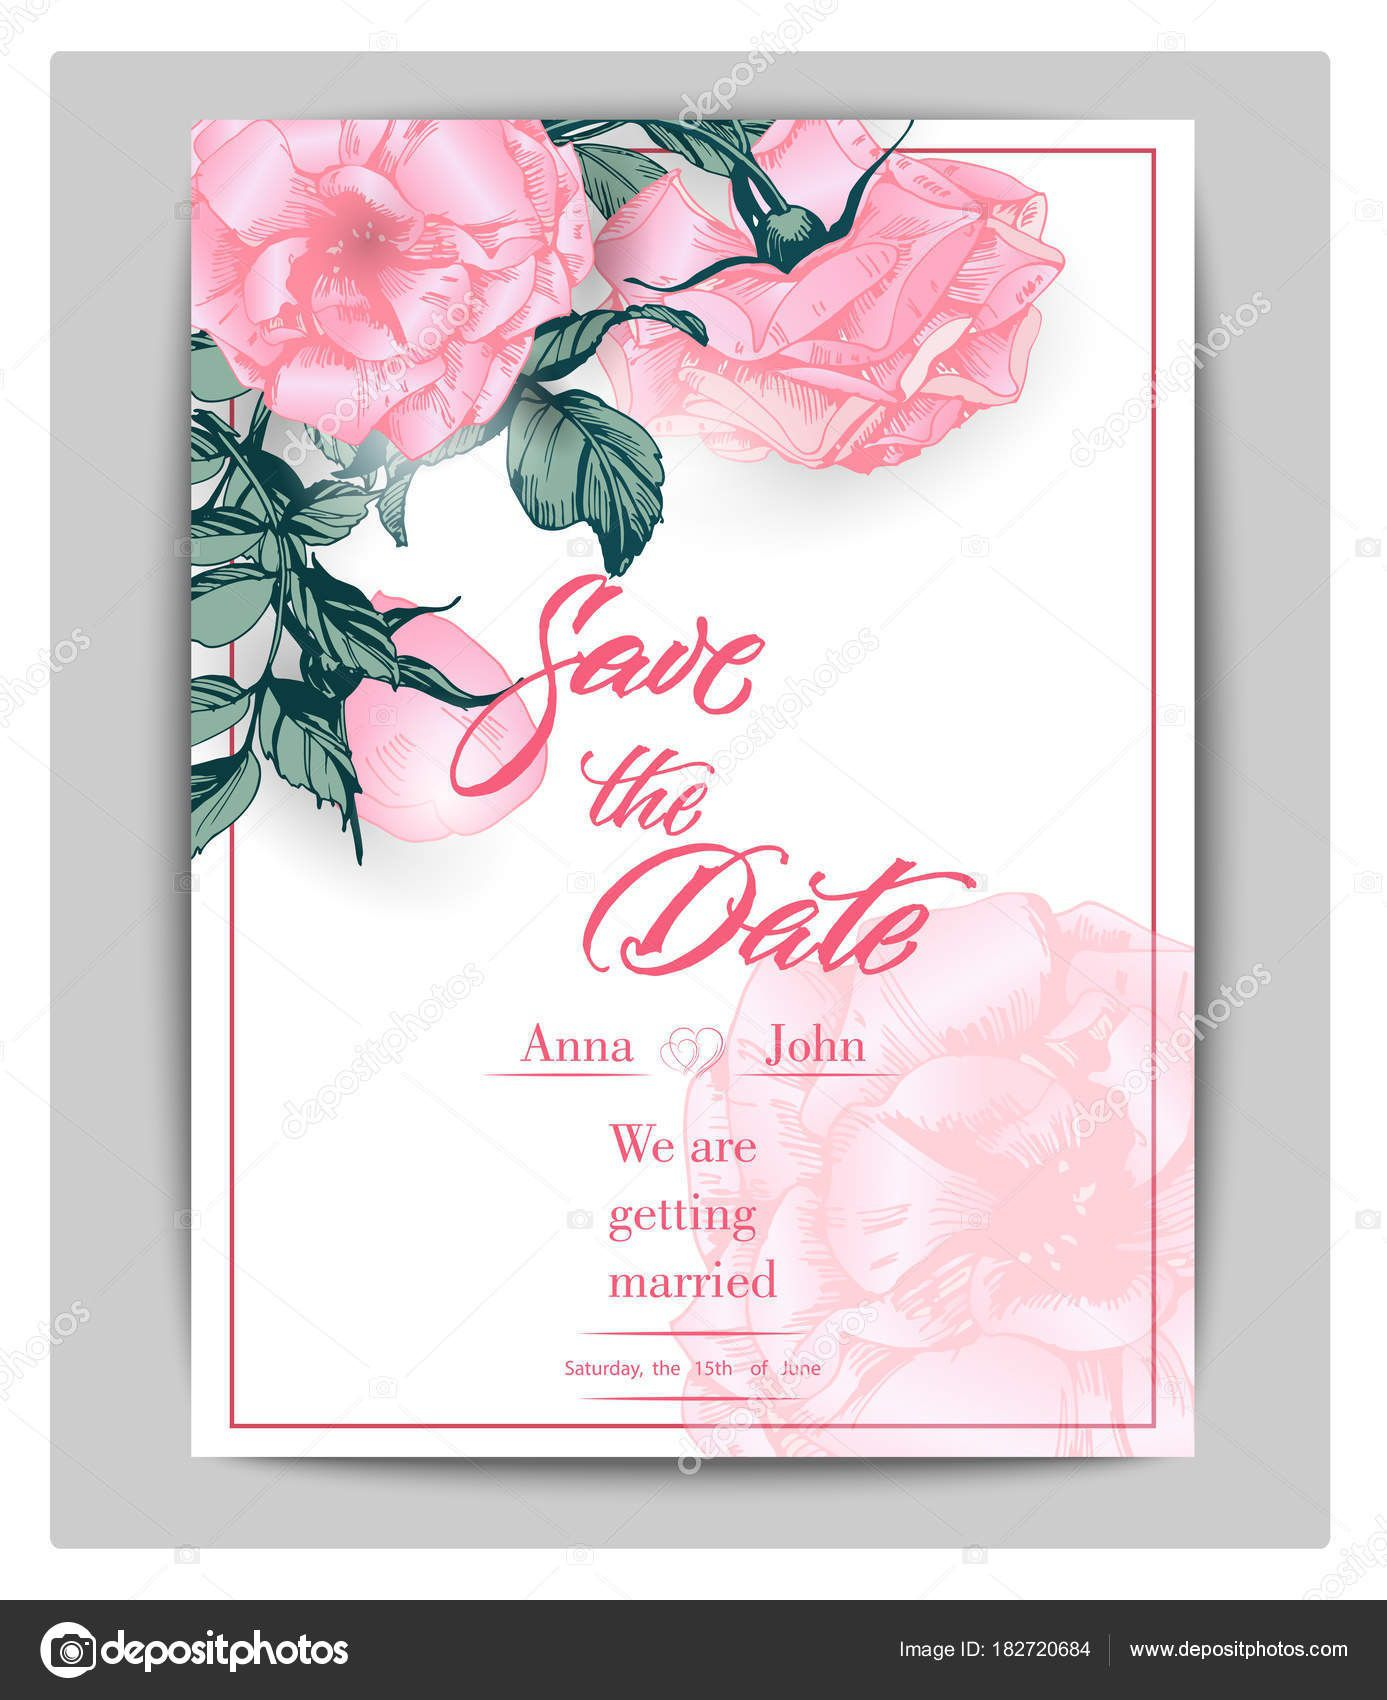 006 Top Save The Date Birthday Card Template High Resolution  Free PrintableFull